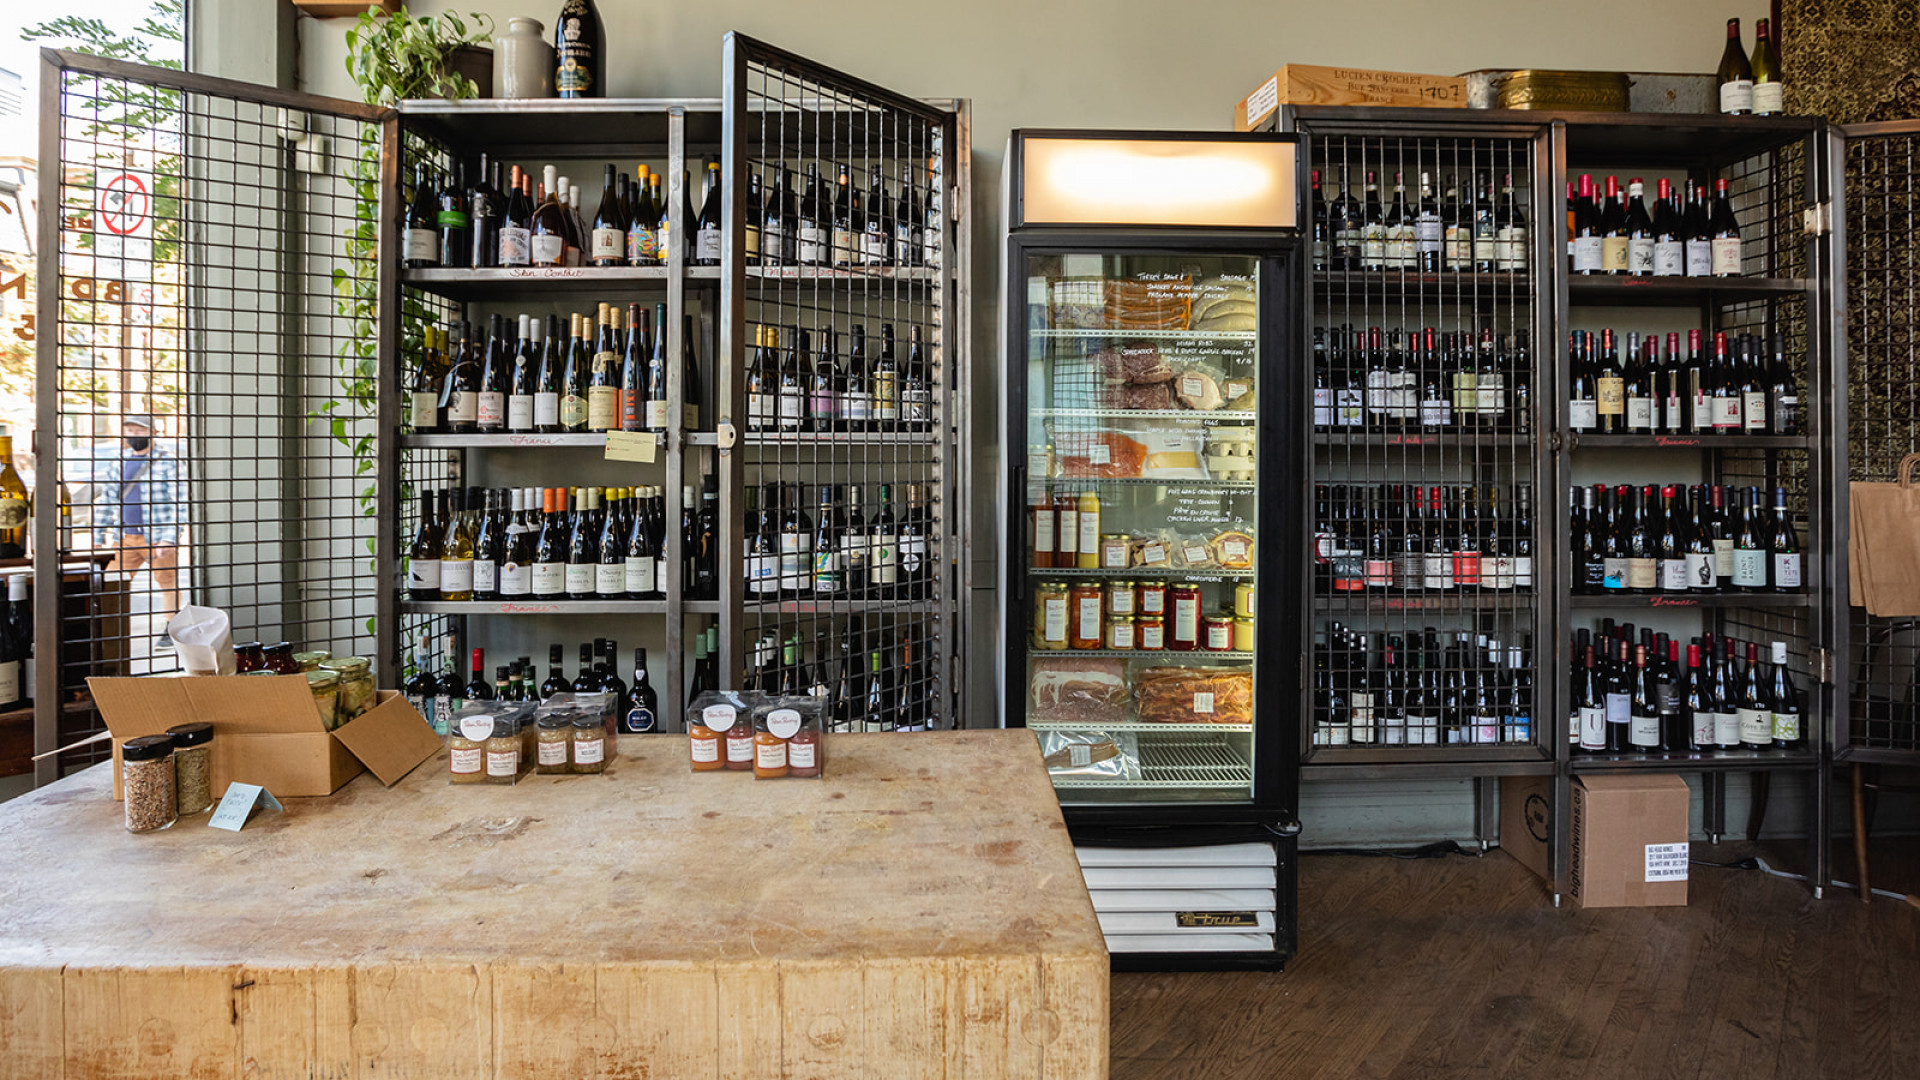 The best bottle shops in Toronto | A wide variety of wine at Peter Pantry